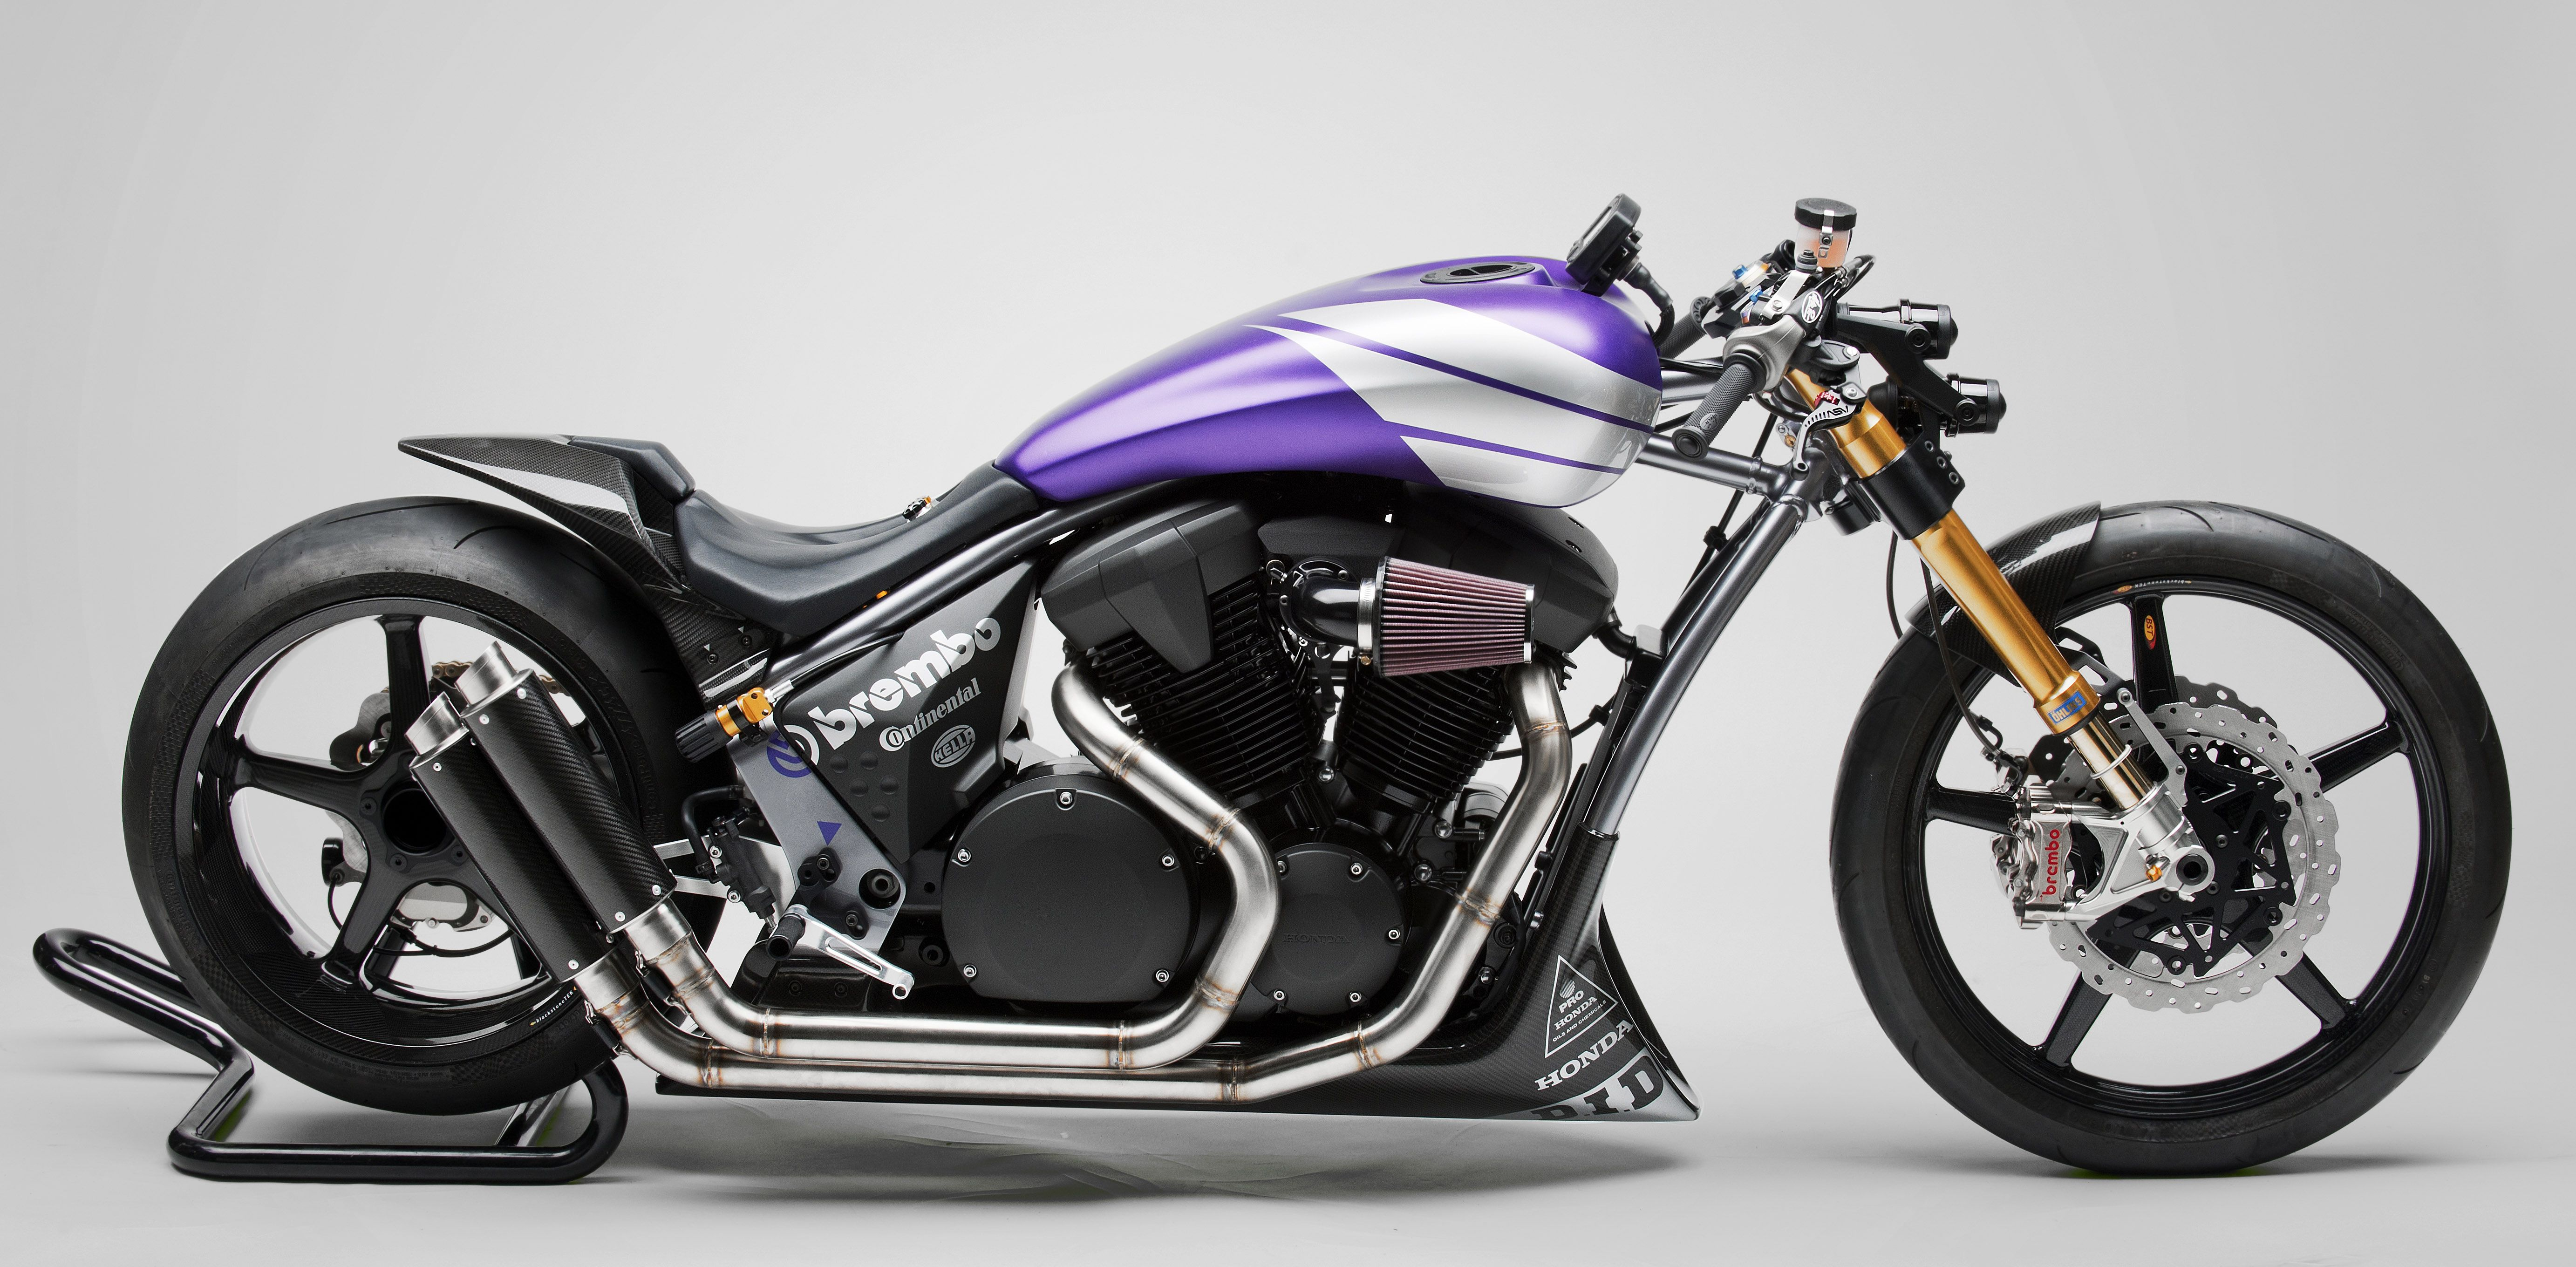 Honda Dishes Details on 2010 VT1300 Concept Customs at IMS